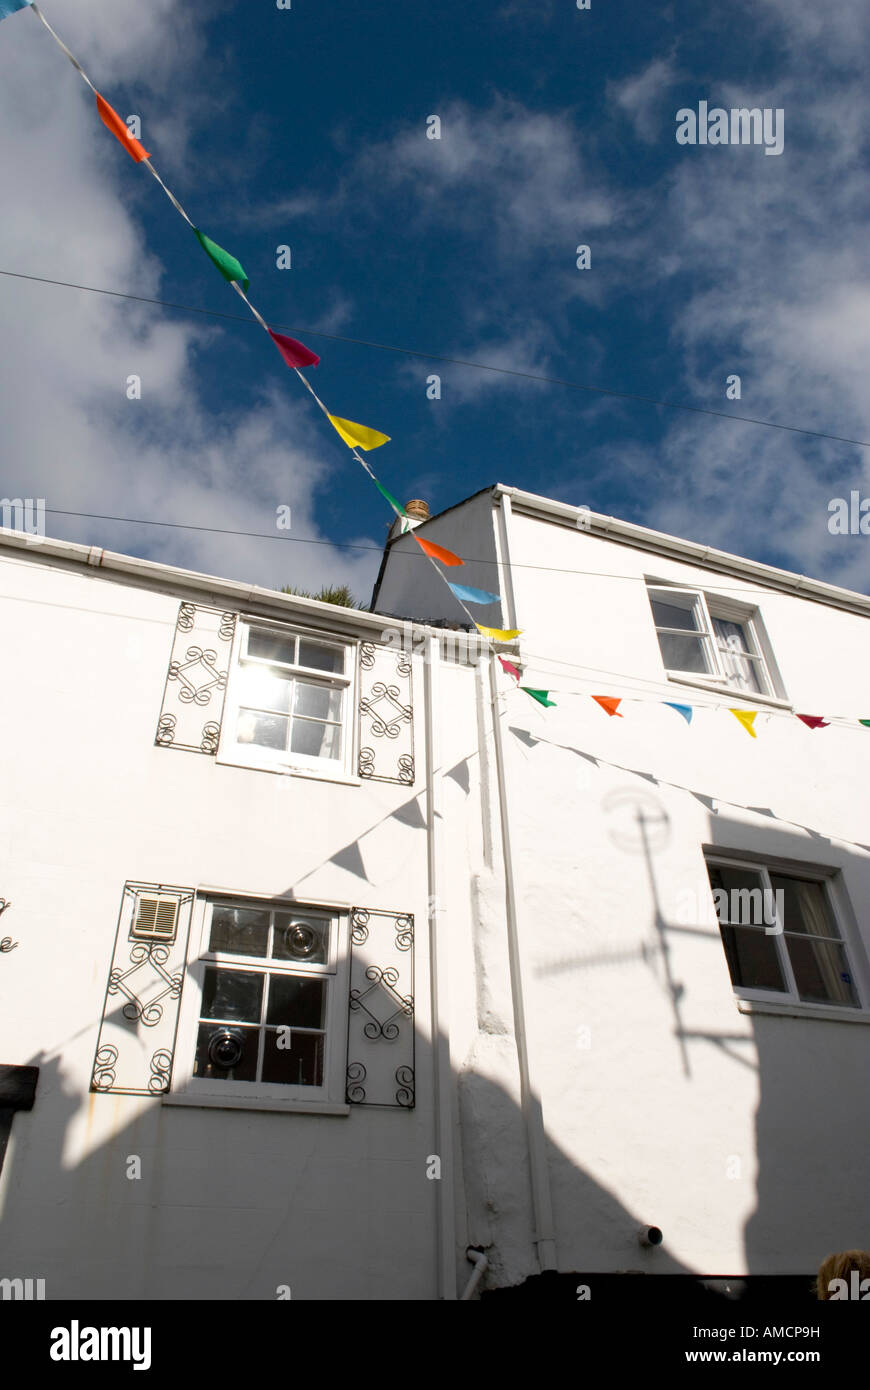 a typical cornish house with facade decorated with flags and buntings ona windy sunny day - Stock Image